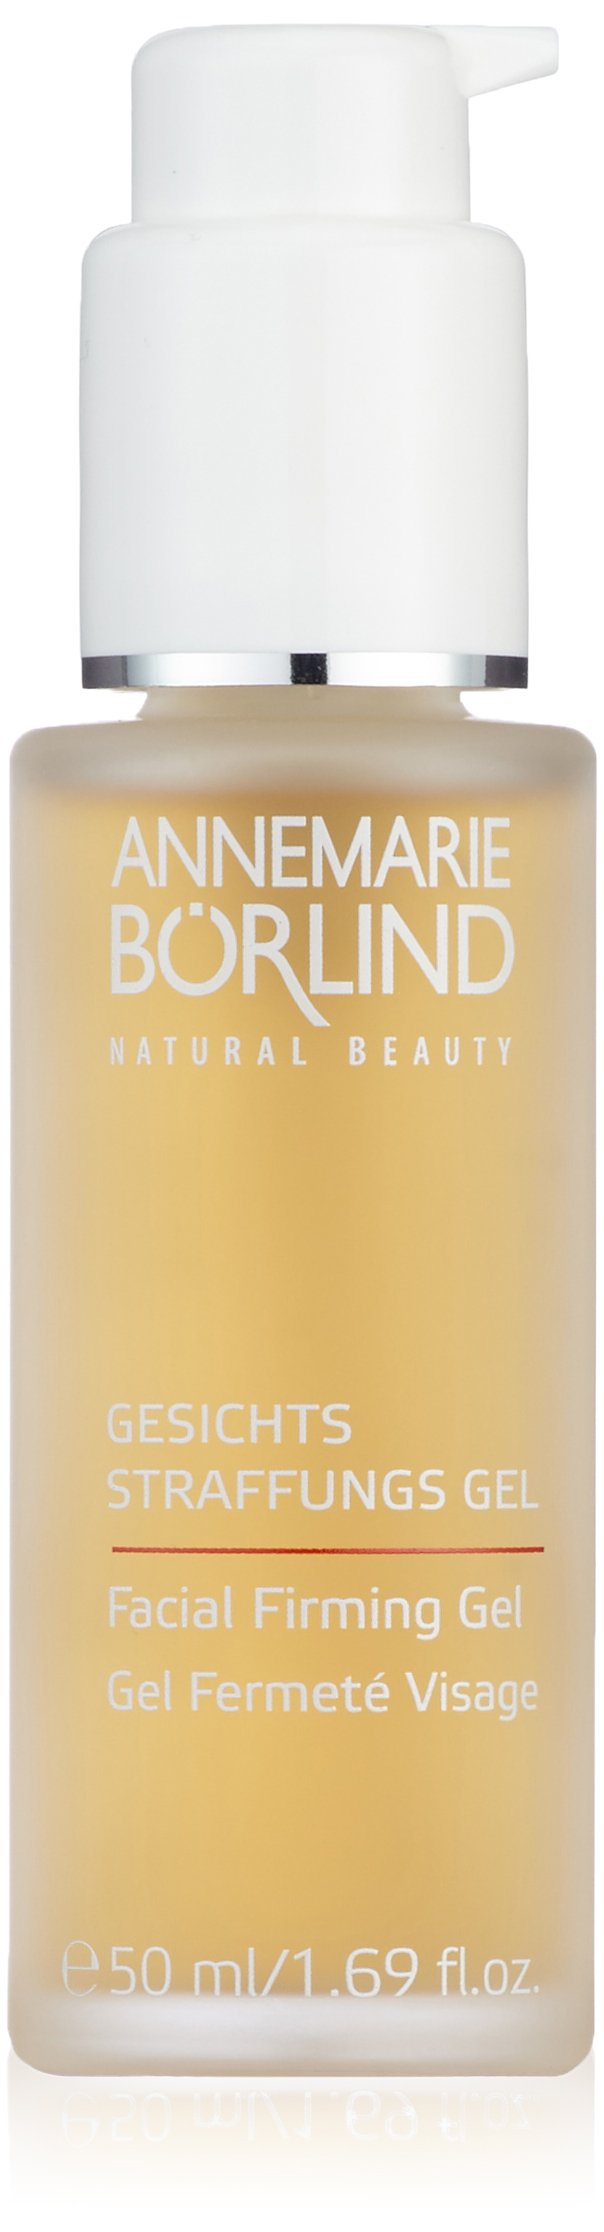 BORLIND Facial Firming Gel, 2.53 FZ by Annemarie Borlind